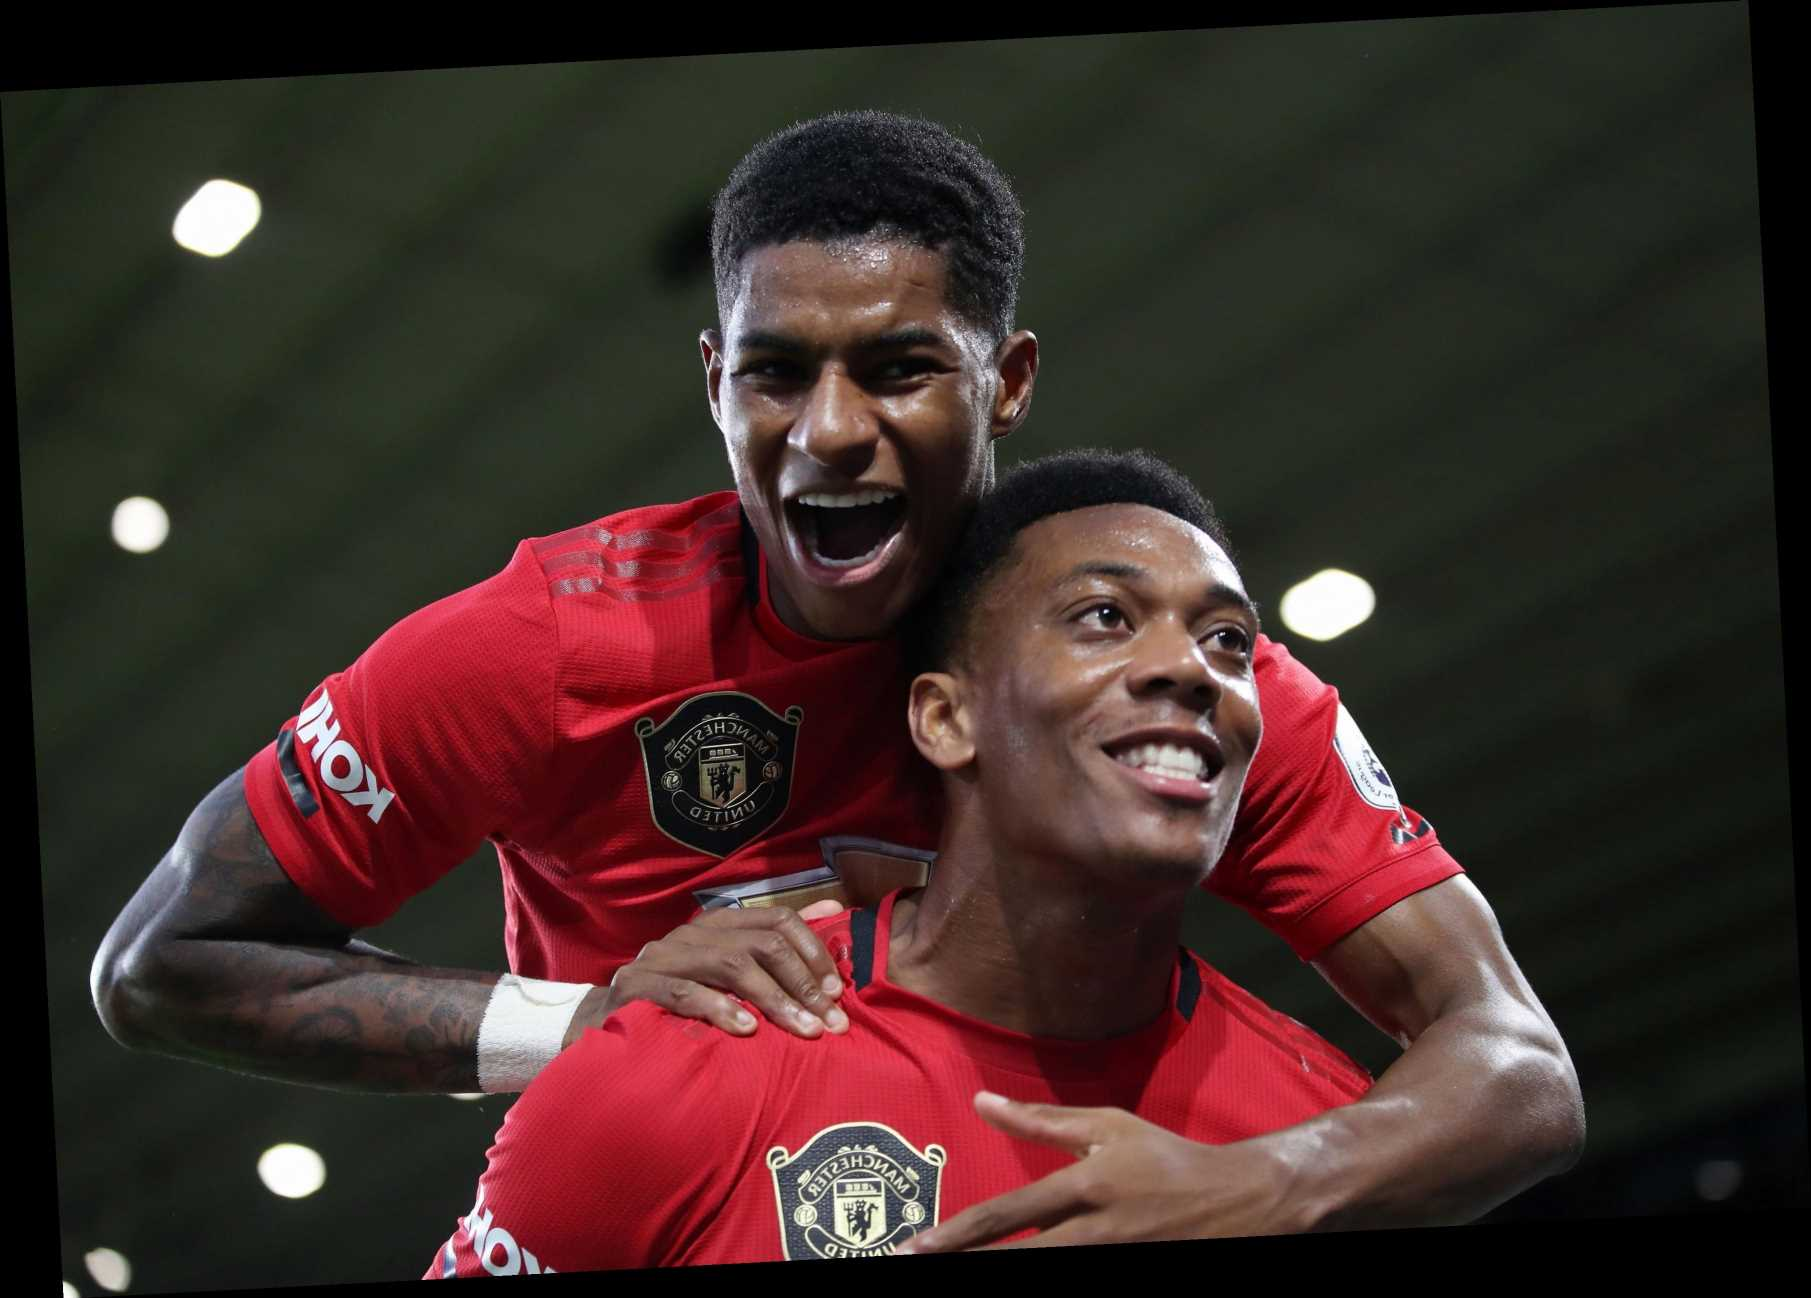 Marcus Rashford tipped to be next Man Utd captain after hat-trick heroics, giving Martial penalty and charity work